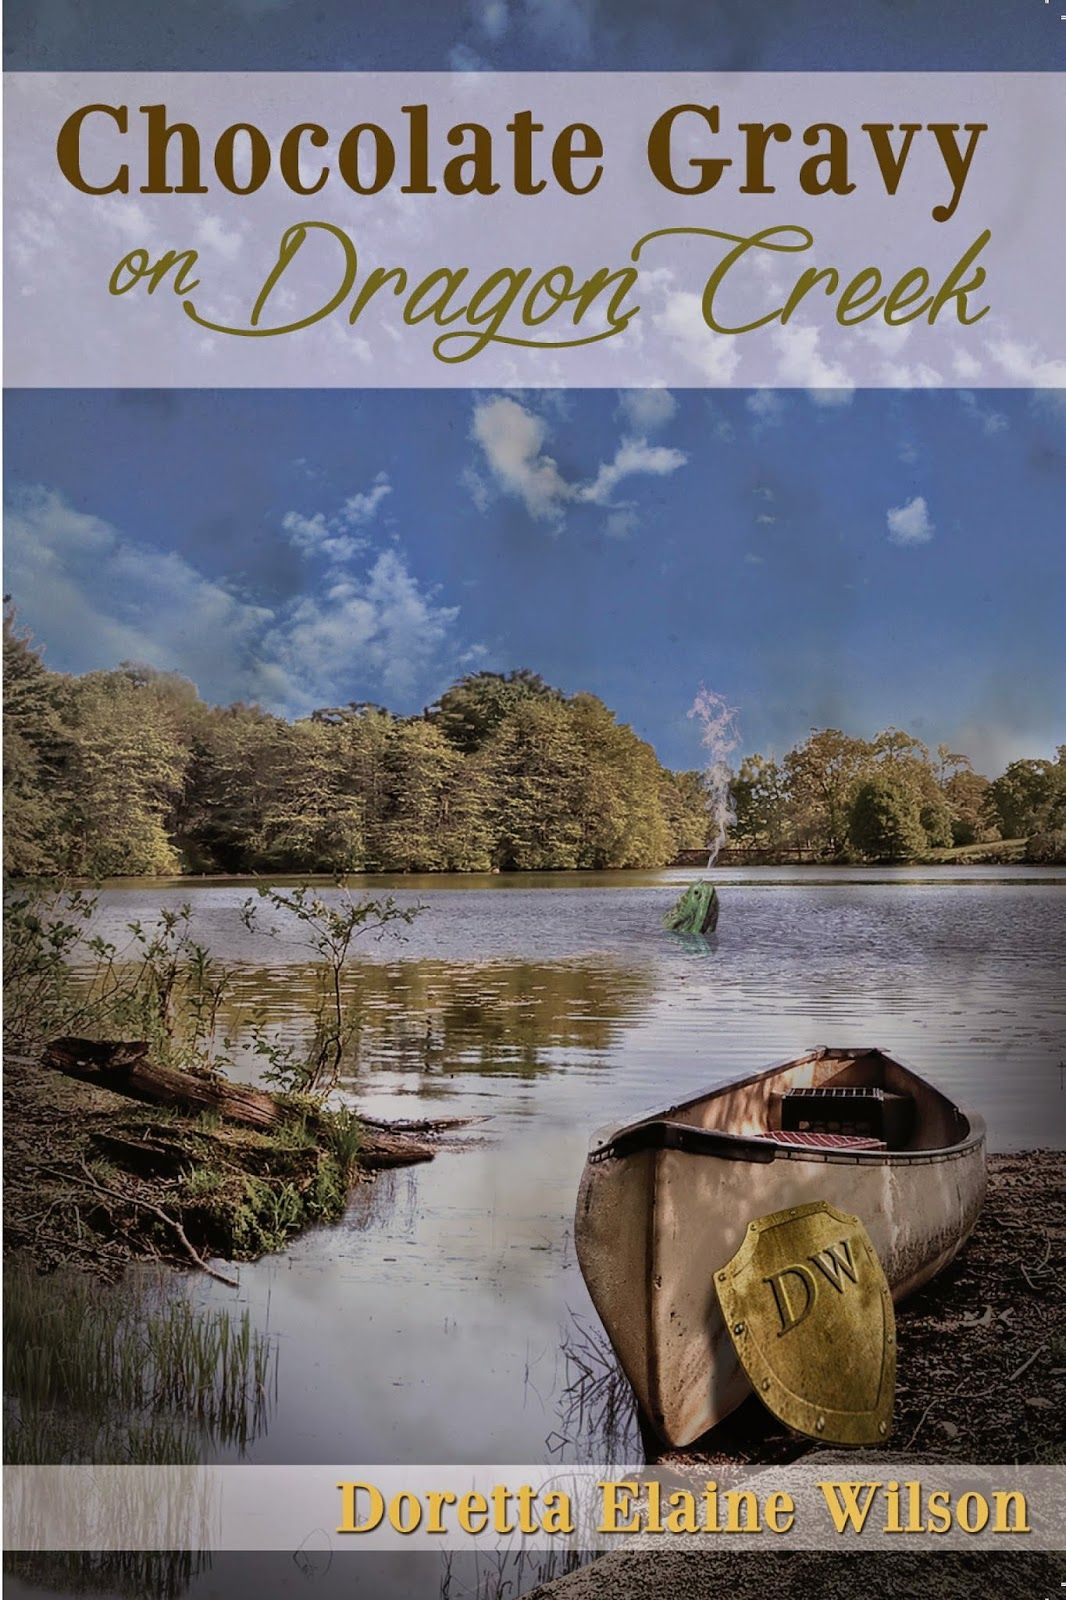 Literary Classics Book Awards and Reviews: Chocolate Gravy on Dragon Creek earns the CLC Seal...